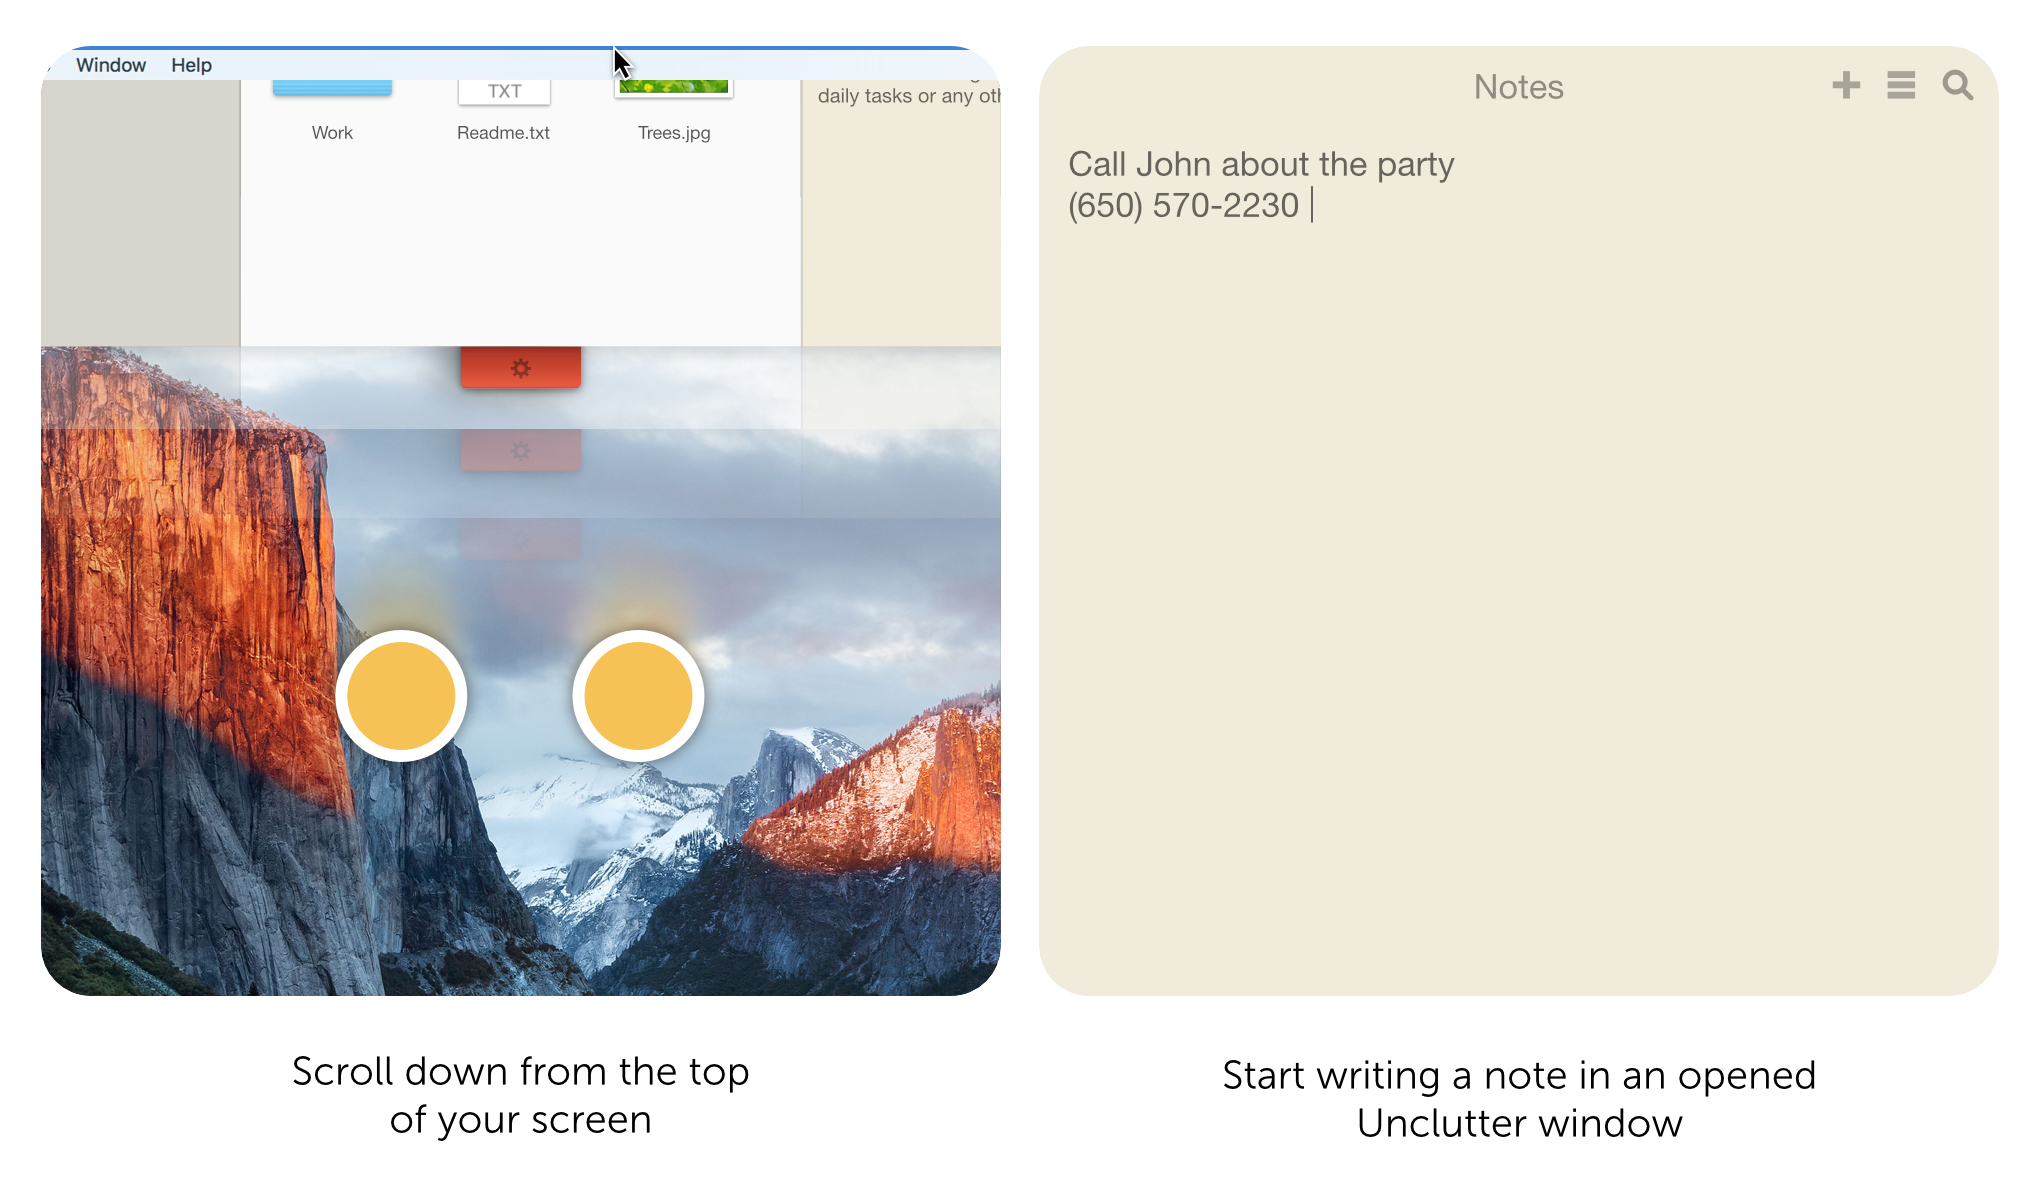 Here is the best way to take a note on Mac. Open Unclutter and start writing instantly.